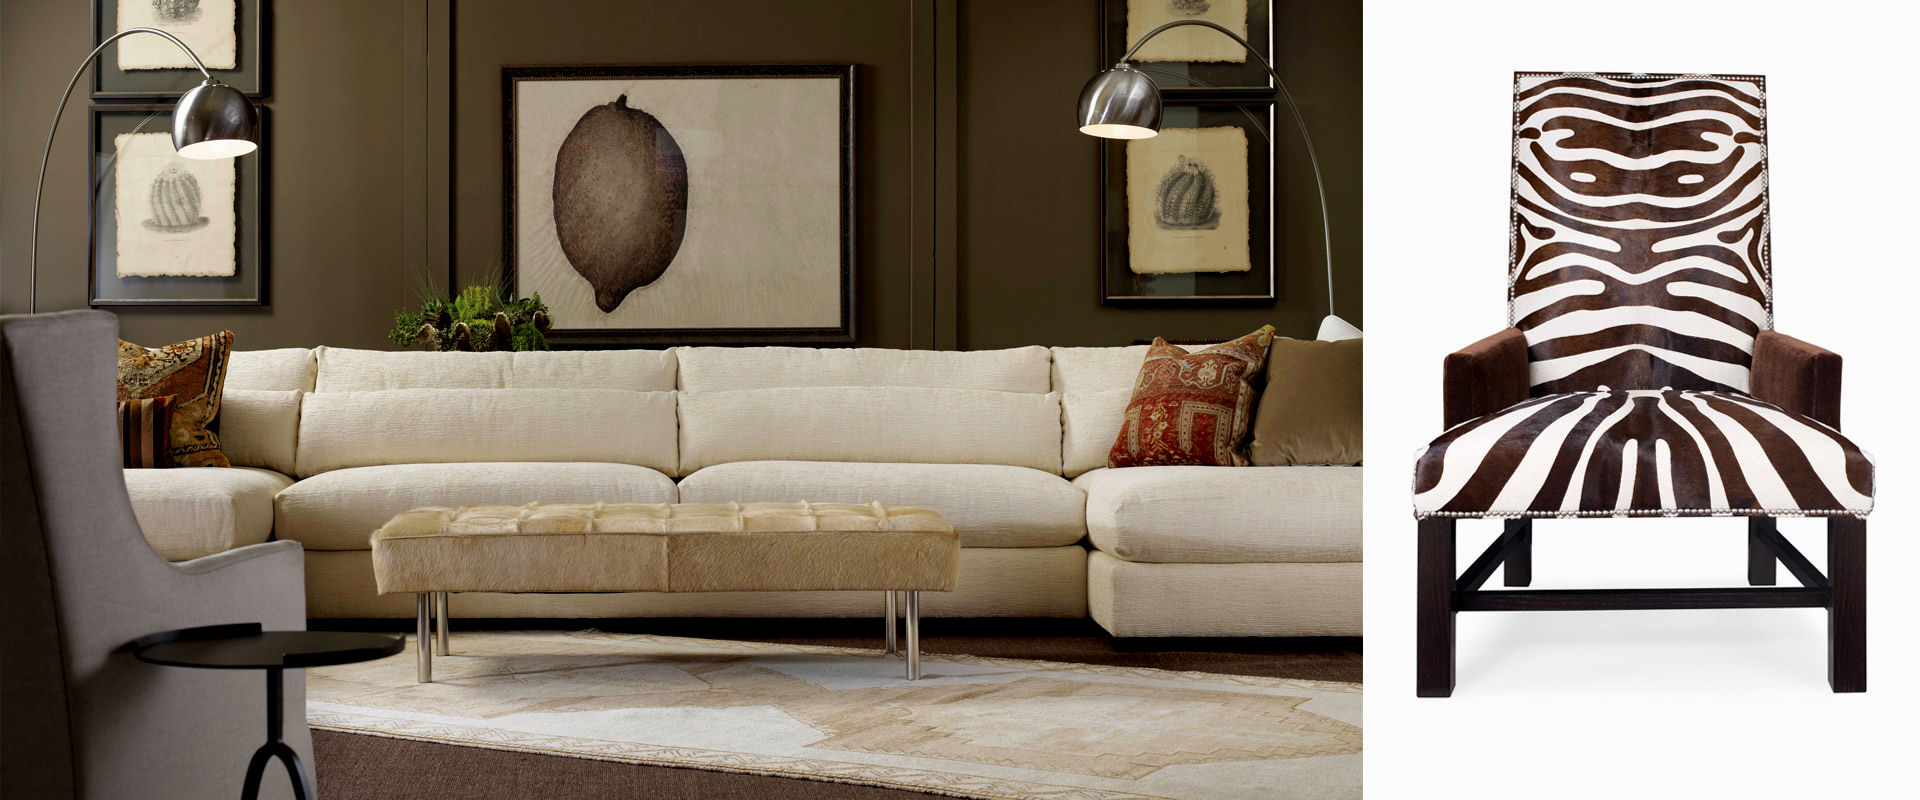 fantastic leather sectional sleeper sofa photograph-Elegant Leather Sectional Sleeper sofa Wallpaper